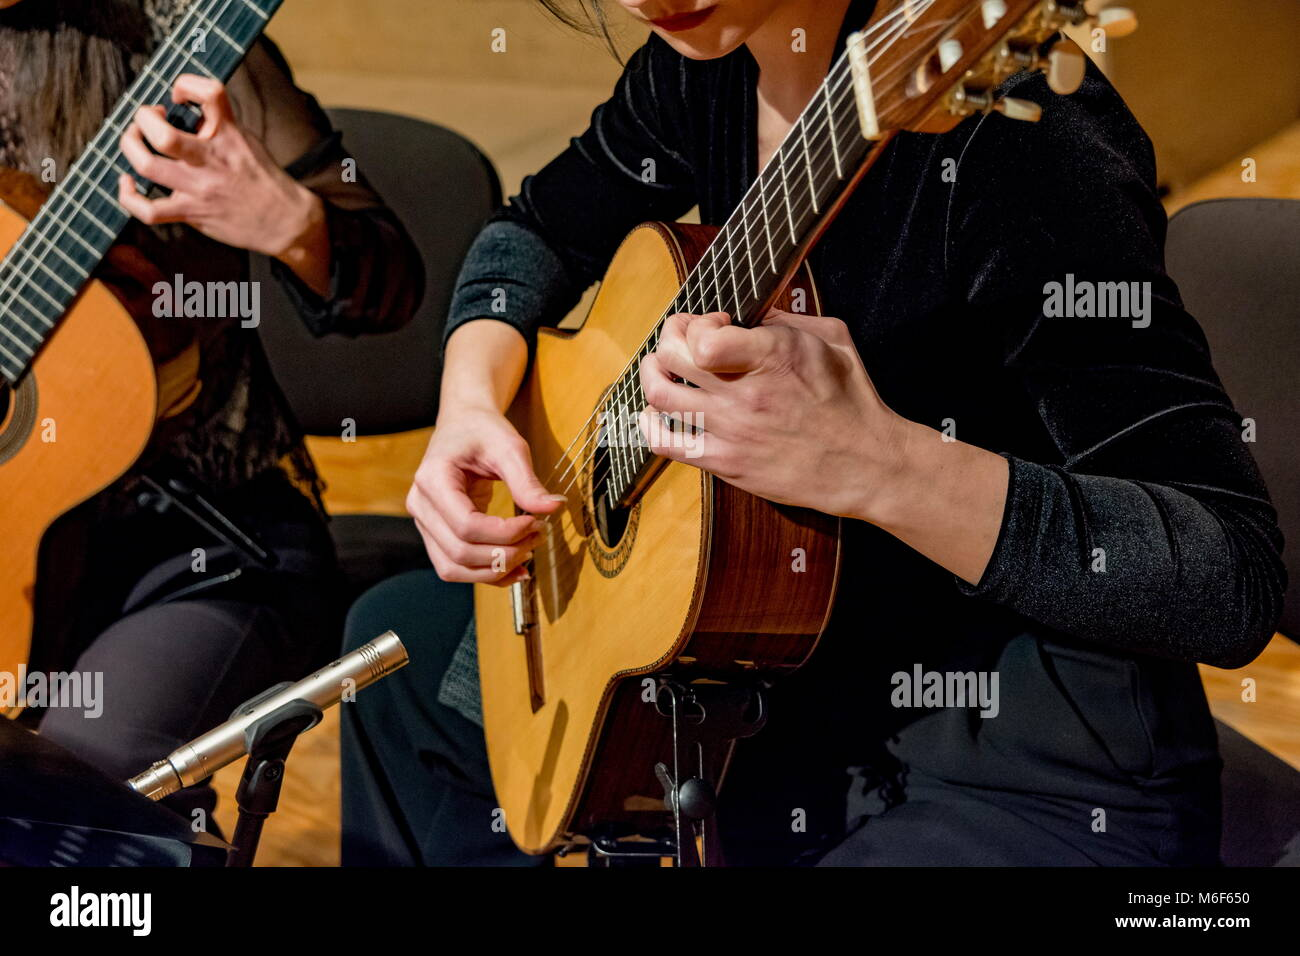 two young women playing guitar in a concert - Stock Image